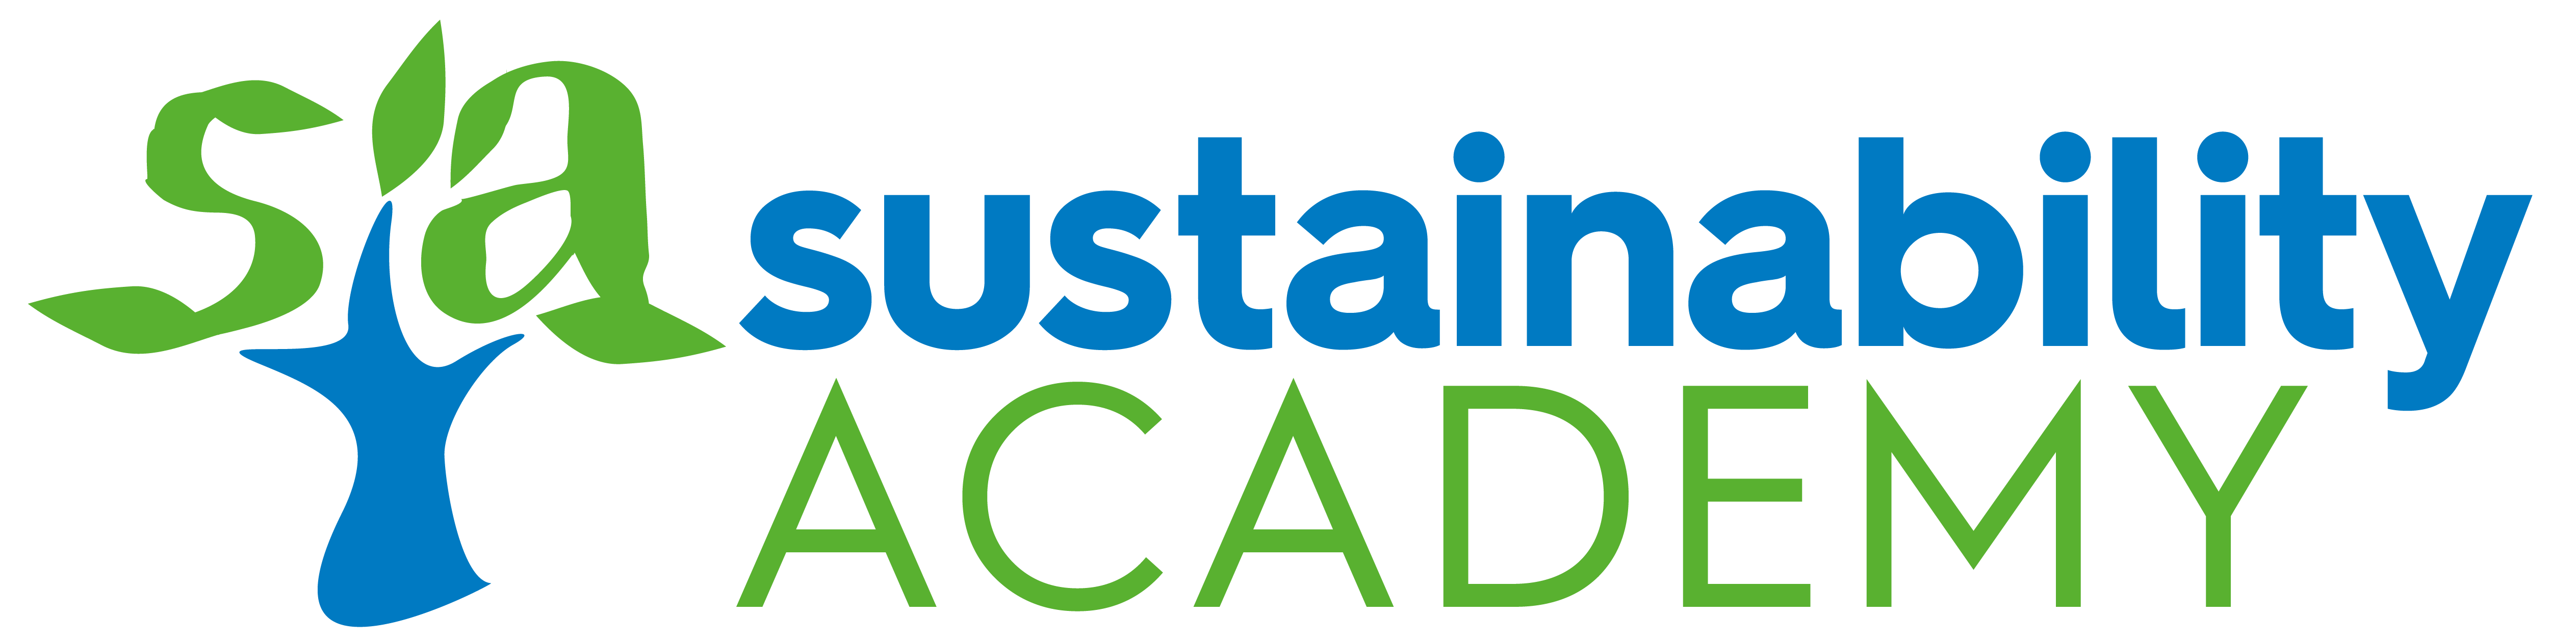 sustainability academy logo